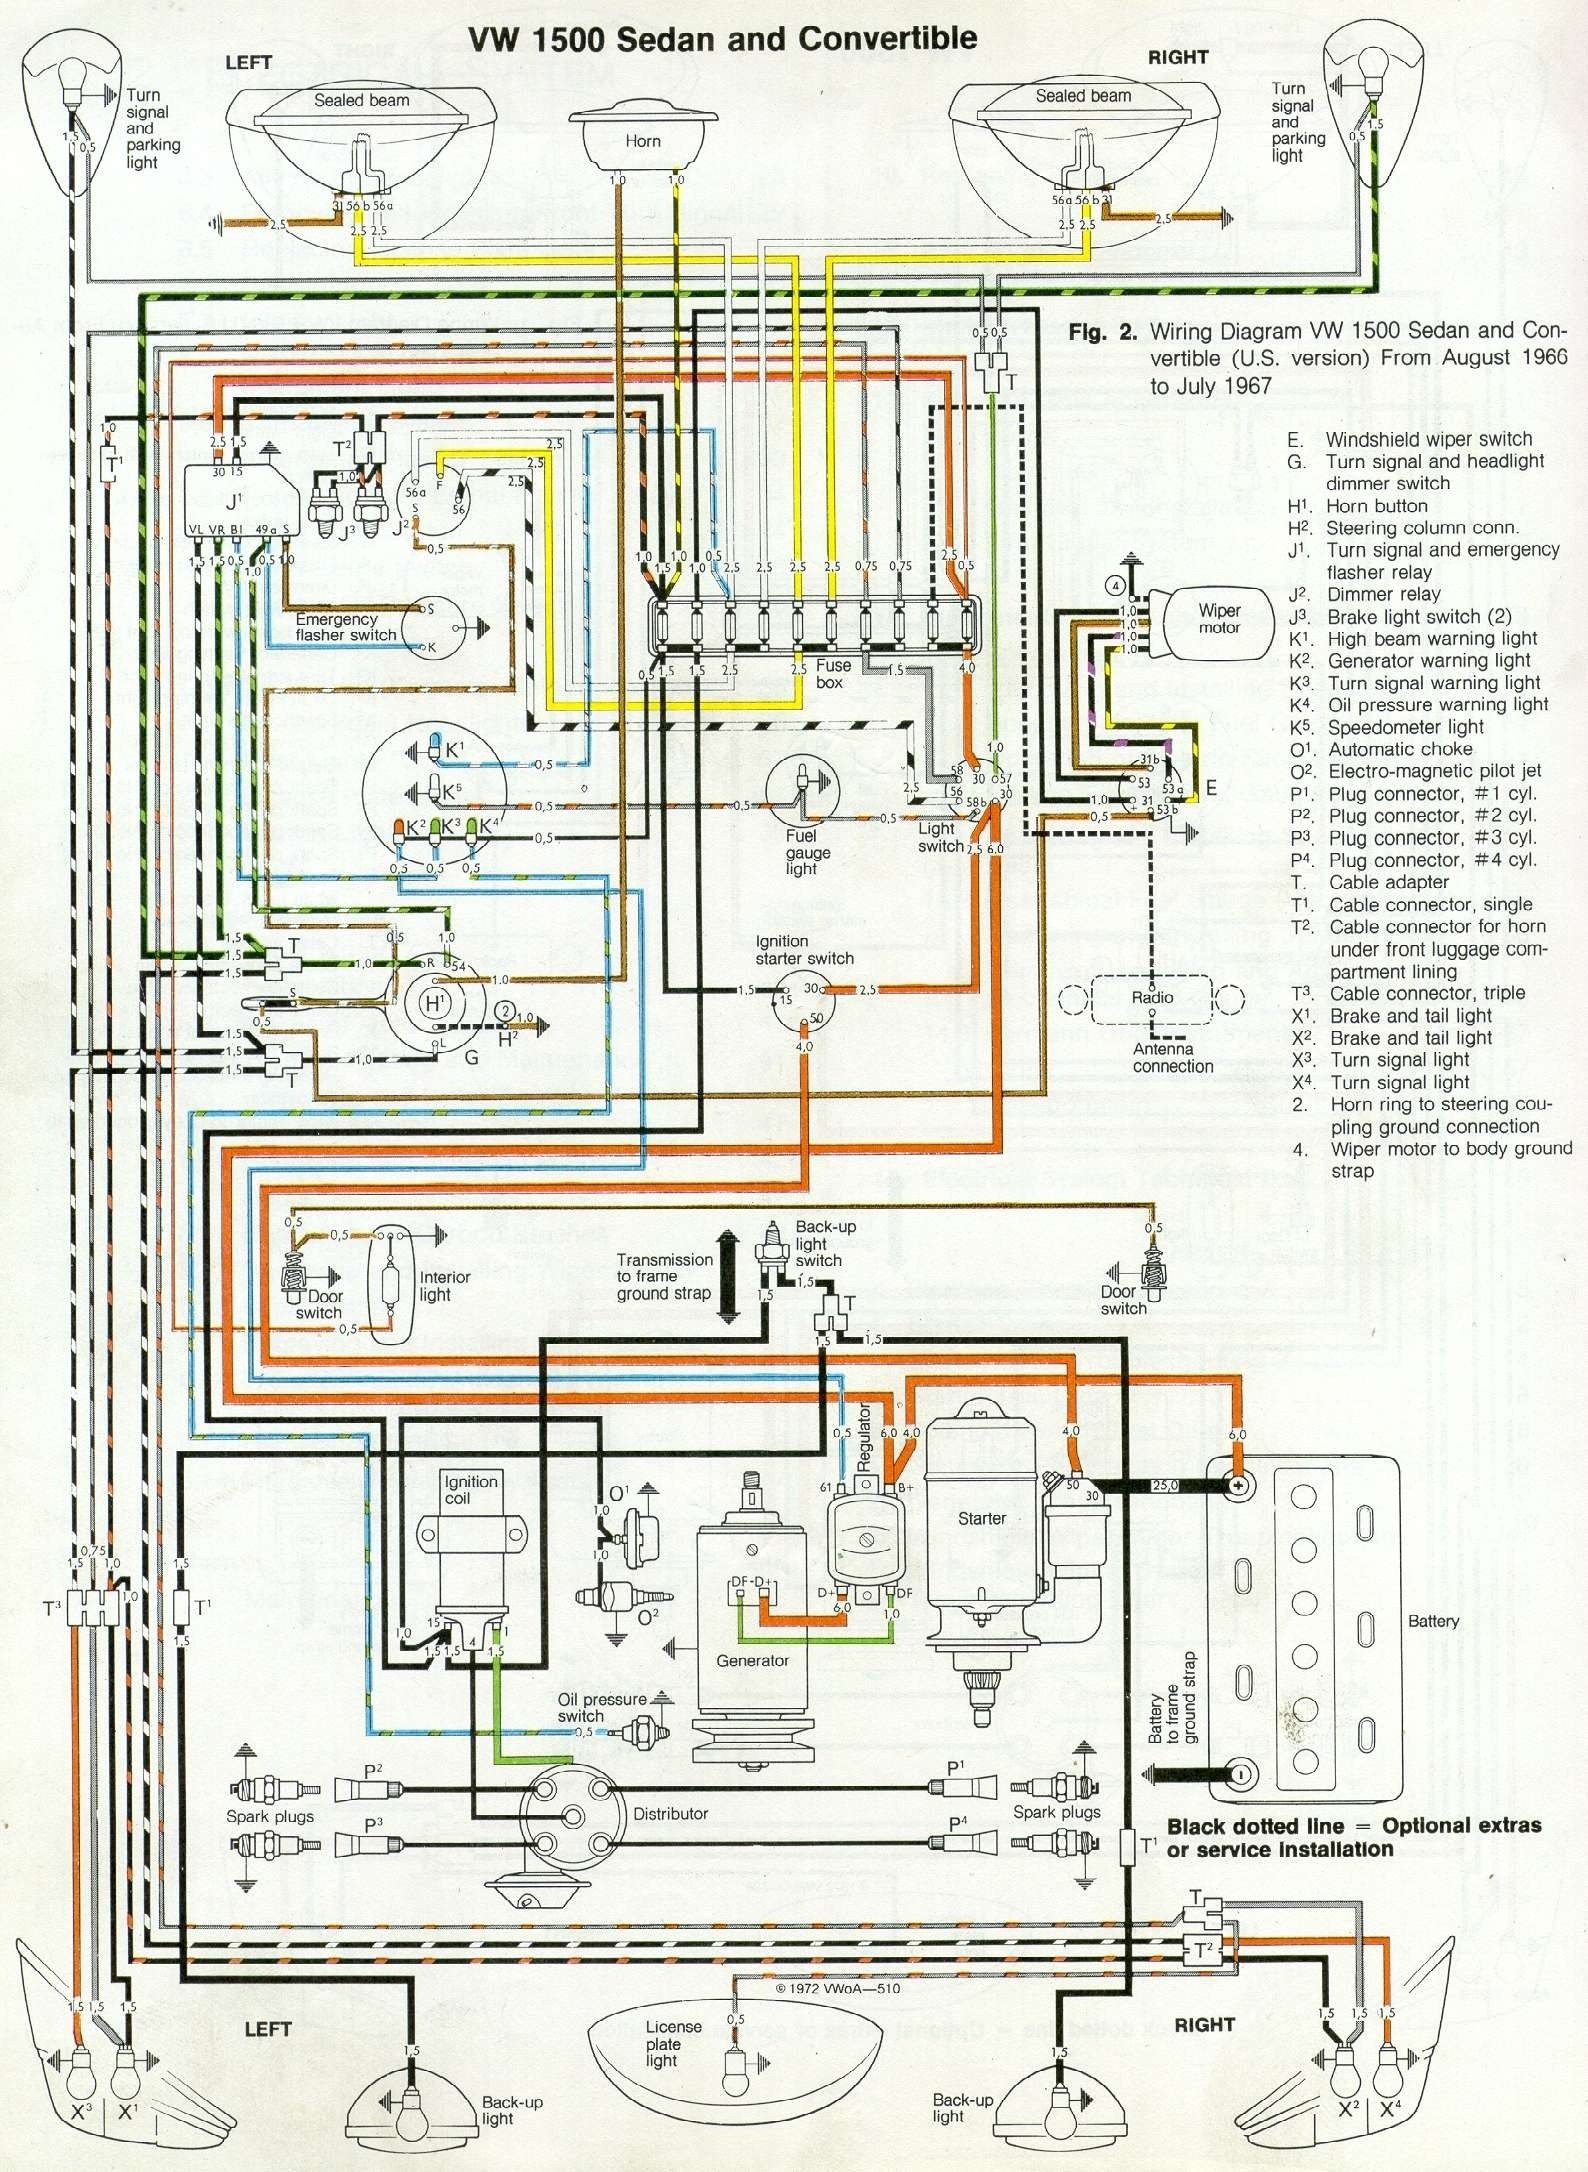 wiring diagram for 67 vw bug schematic diagram database 67 vw bug fuse diagram wiring schematic [ 1588 x 2172 Pixel ]